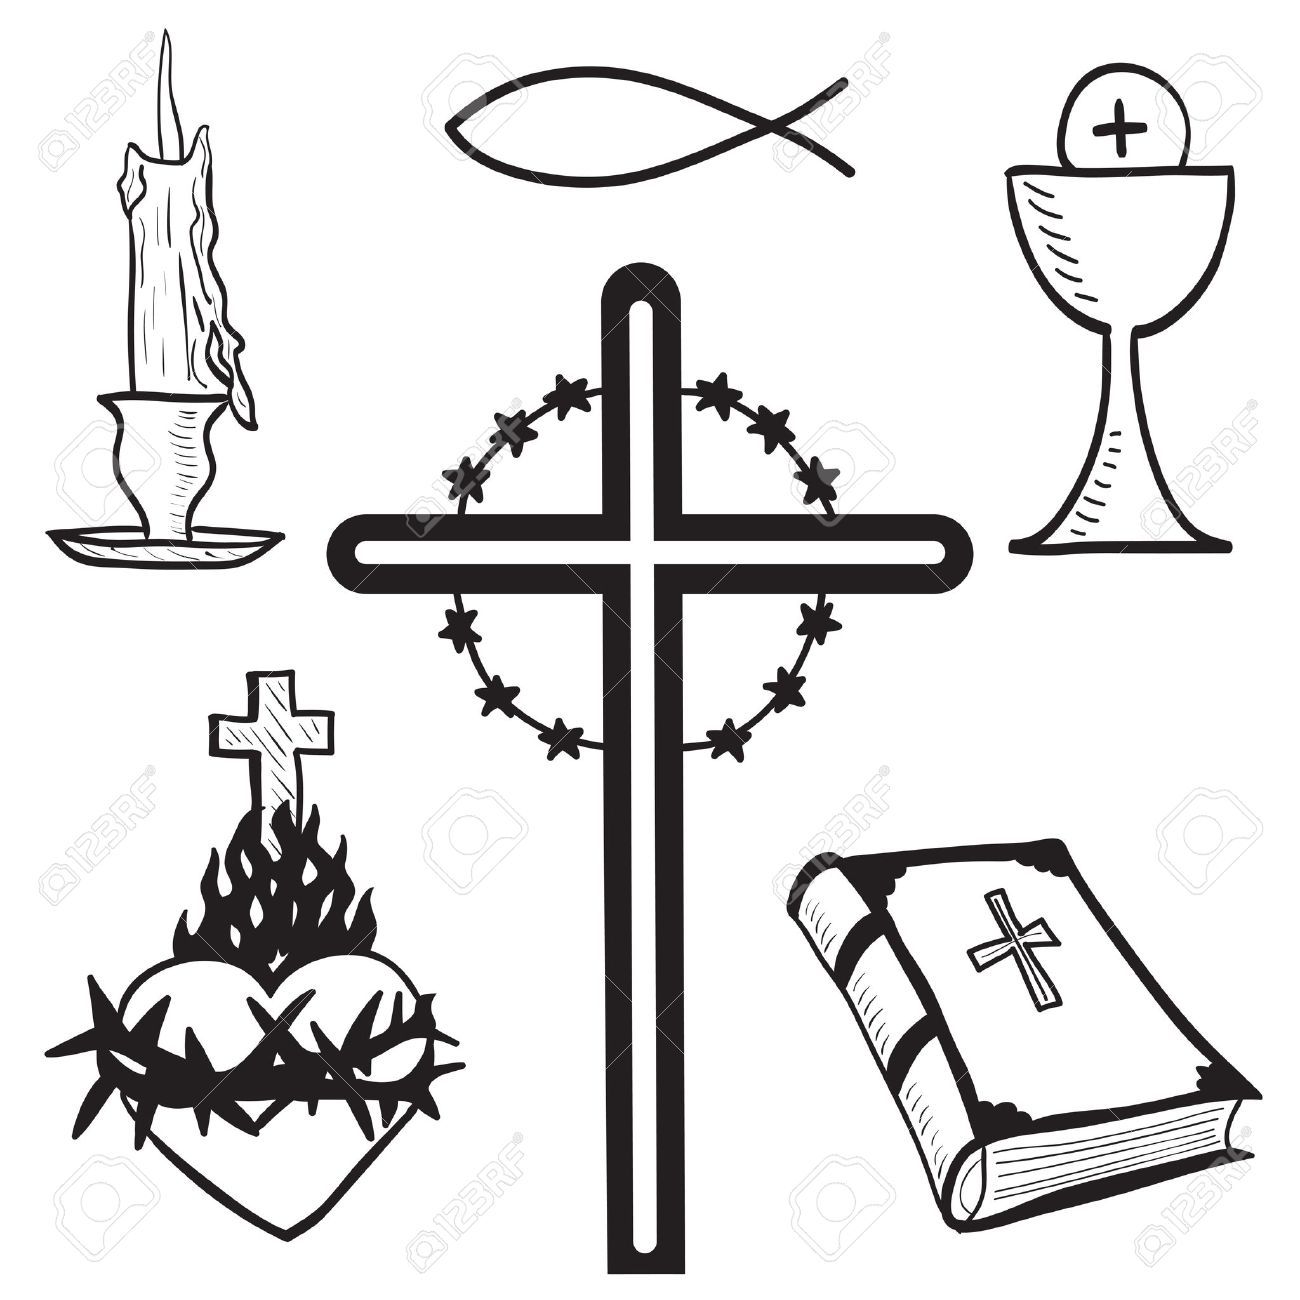 christian hand drawn symbols illustration candle cross bible